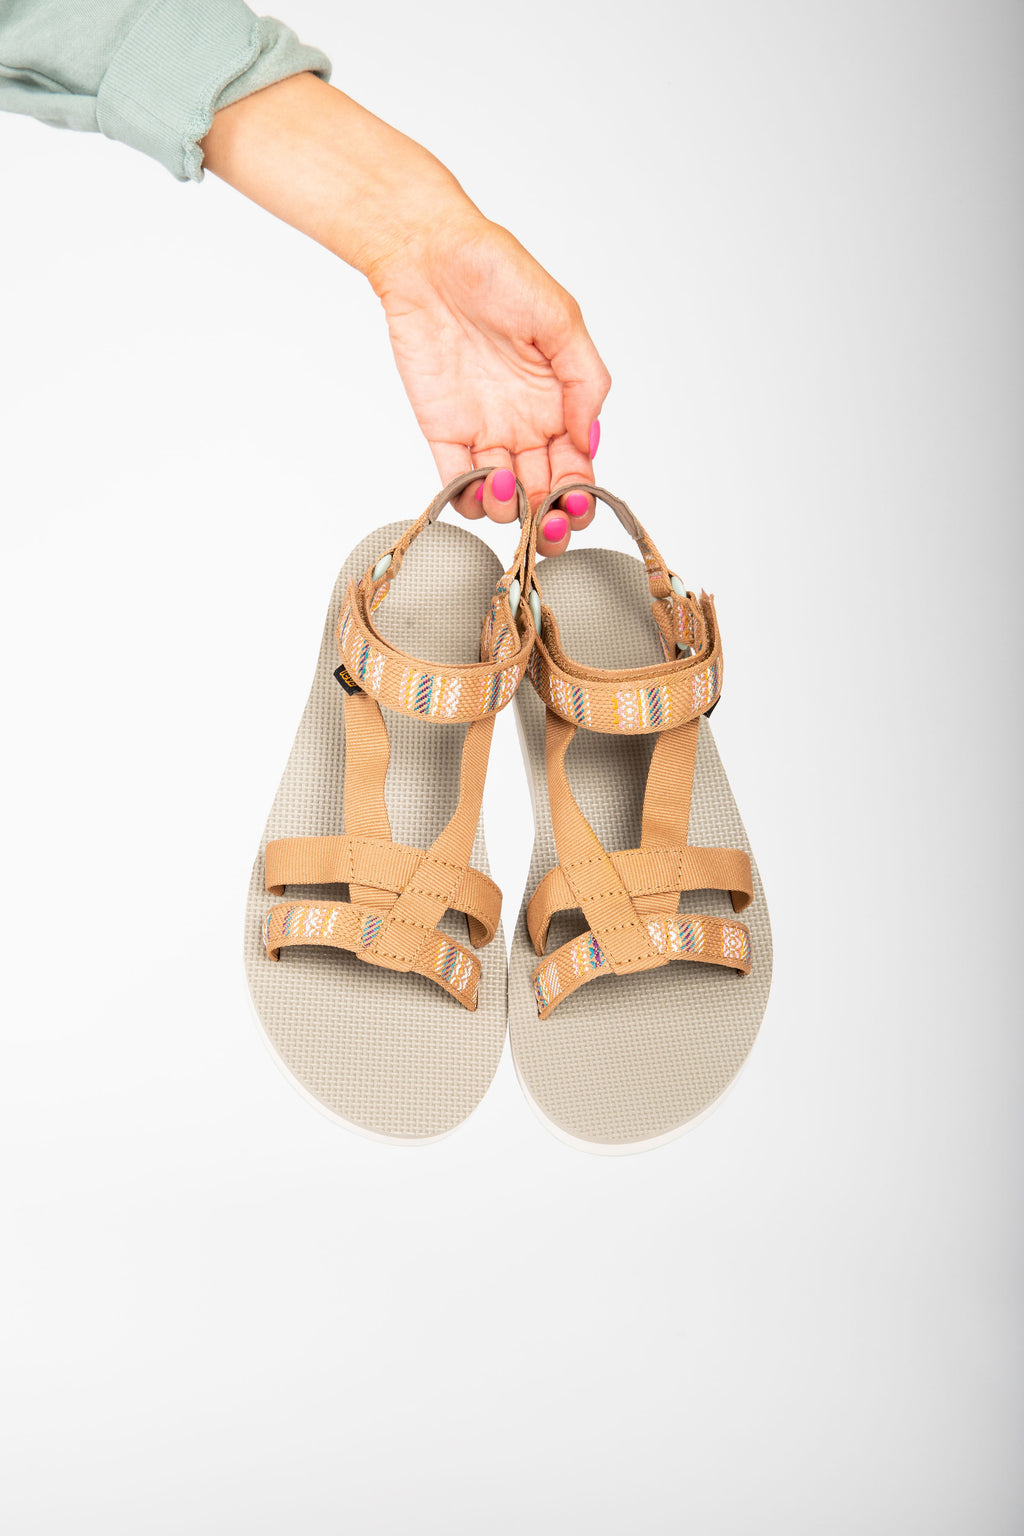 Teva: Midform Arivaca in Aviles Burnt Olive, studio shoot; front view